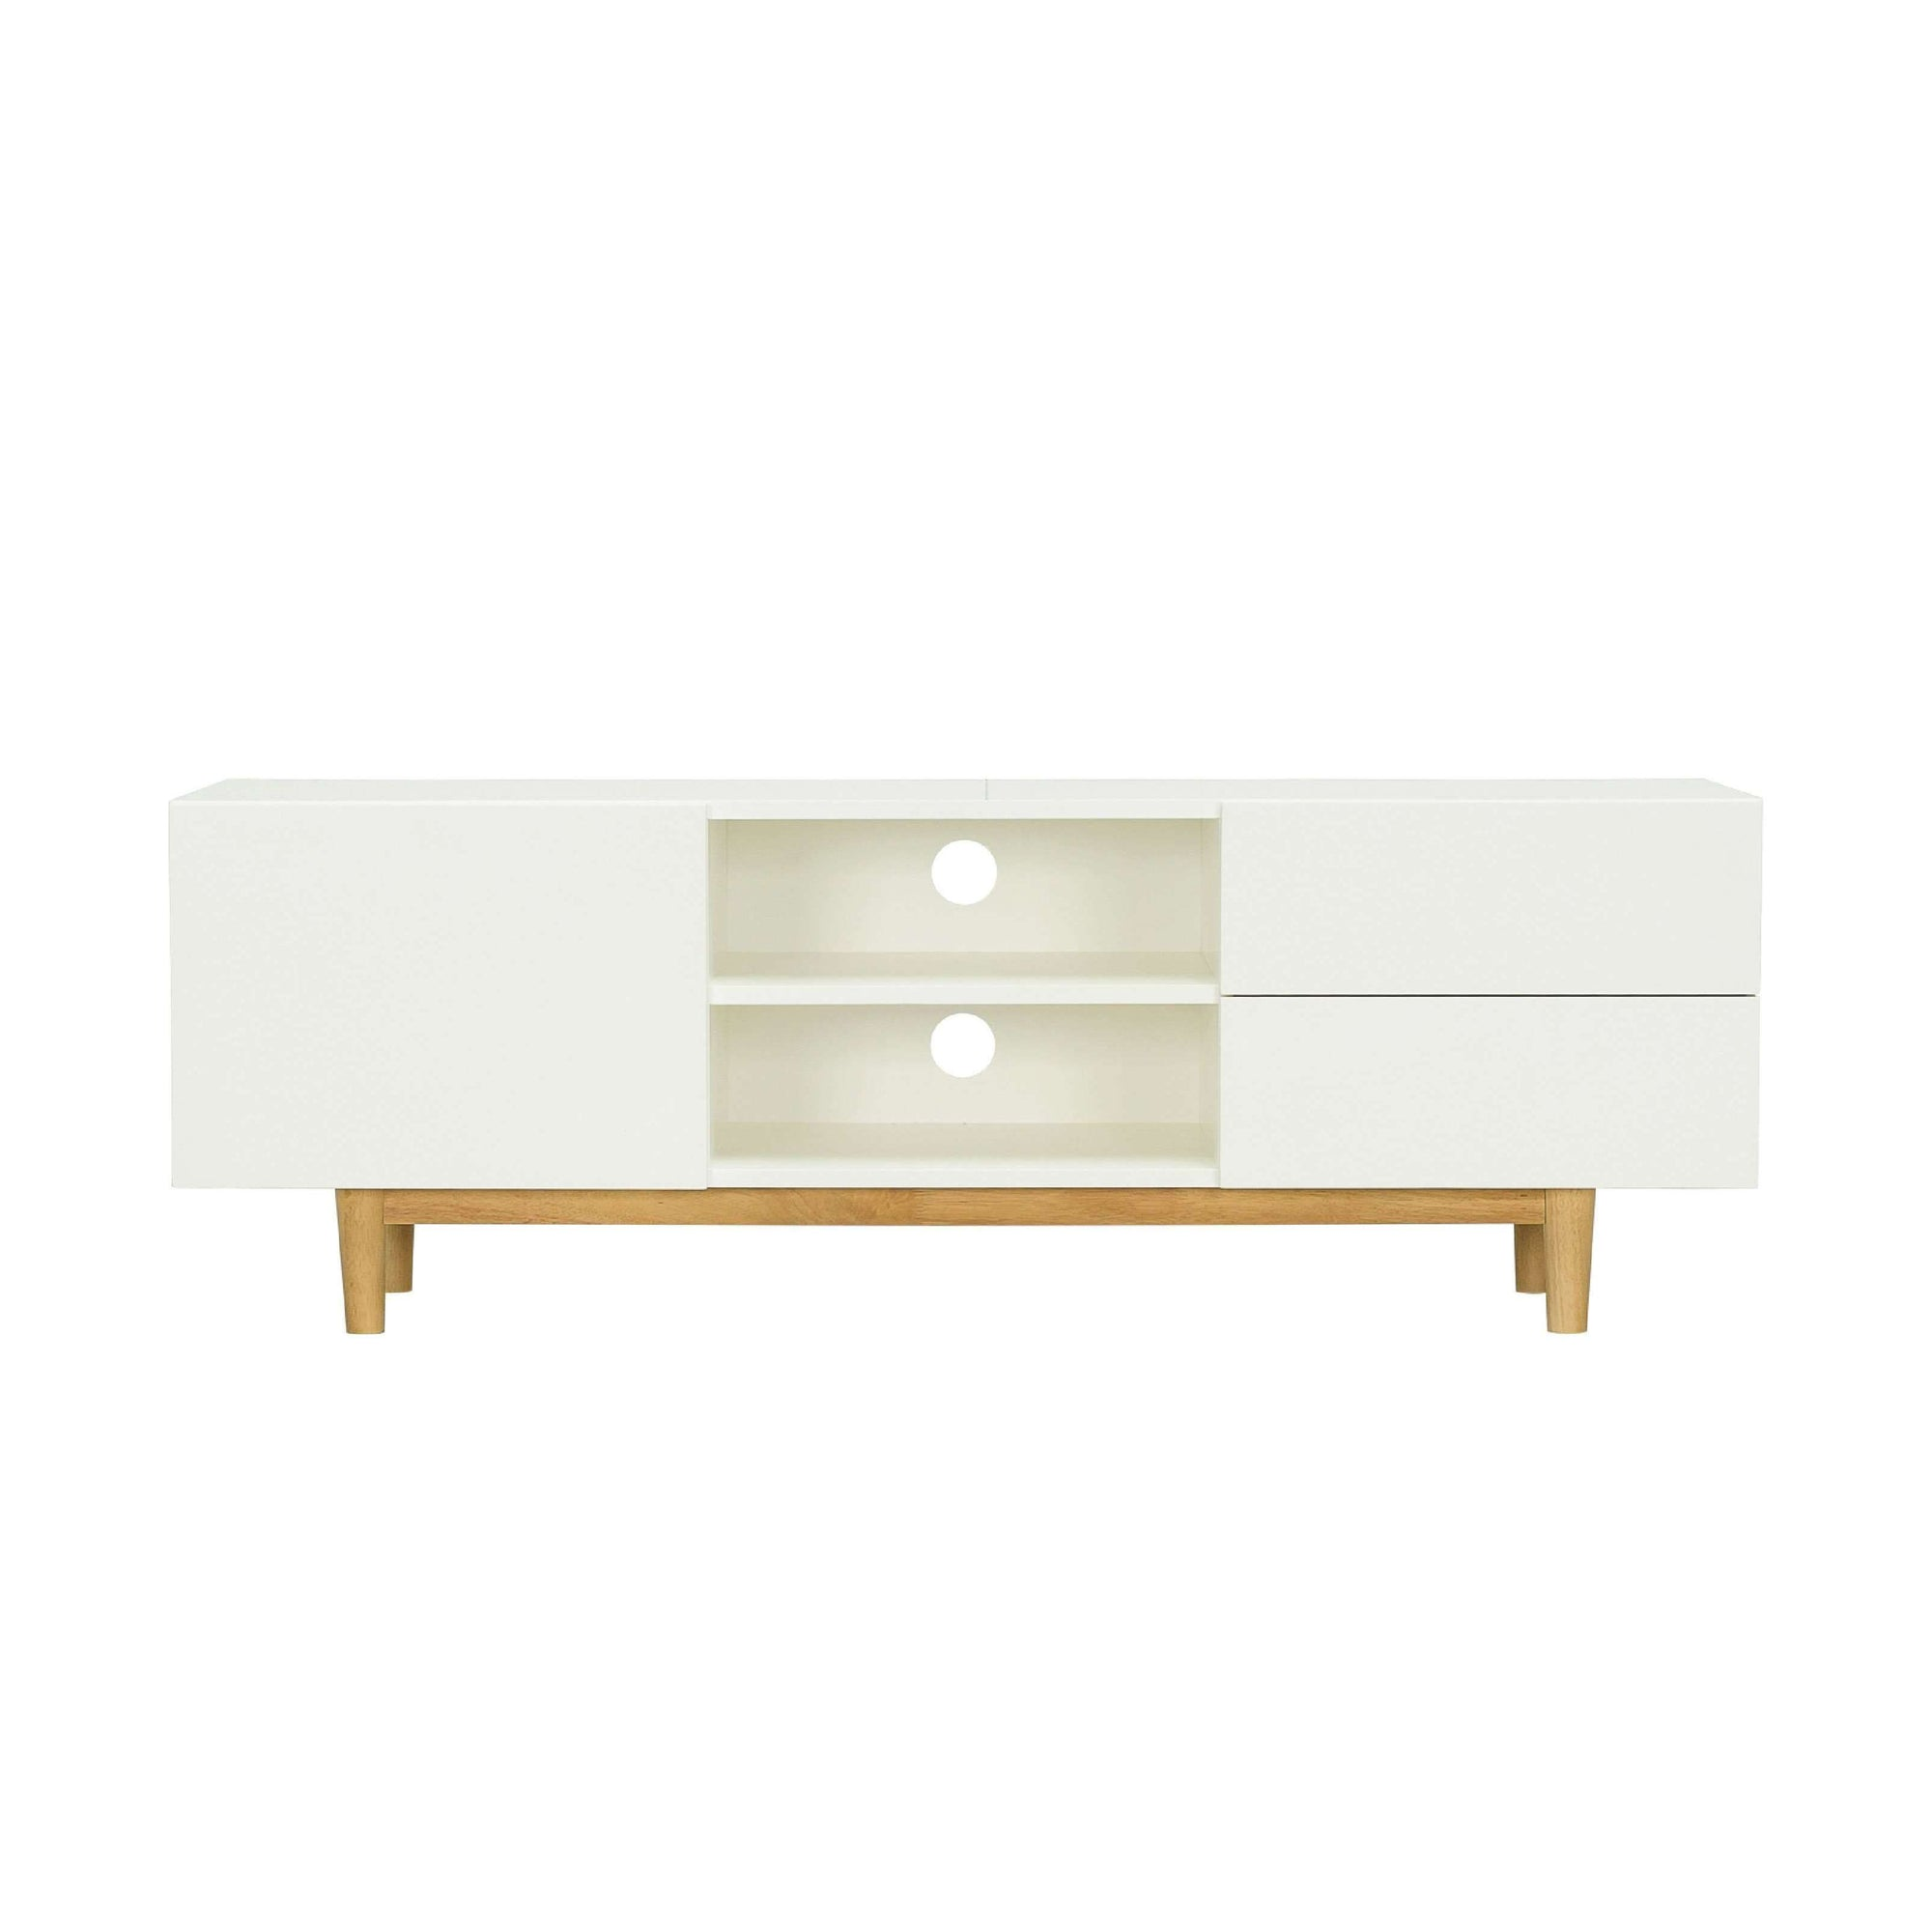 POTTER TV Cabinet On Natural Colour Leg, White Lacquered Body